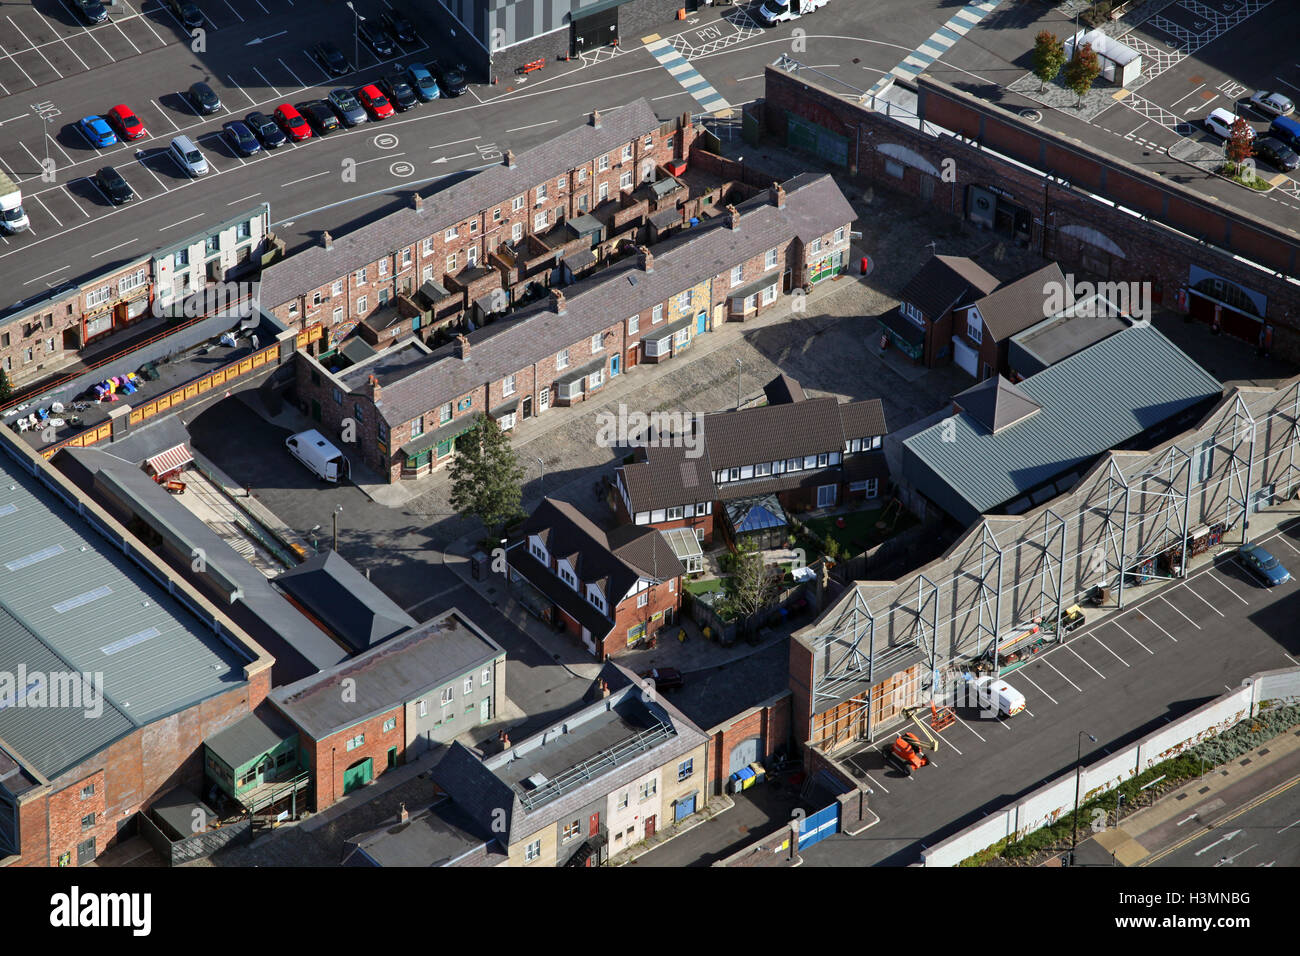 Vue aérienne de l'emplacement défini TV Coronation Street à Manchester, UK Photo Stock